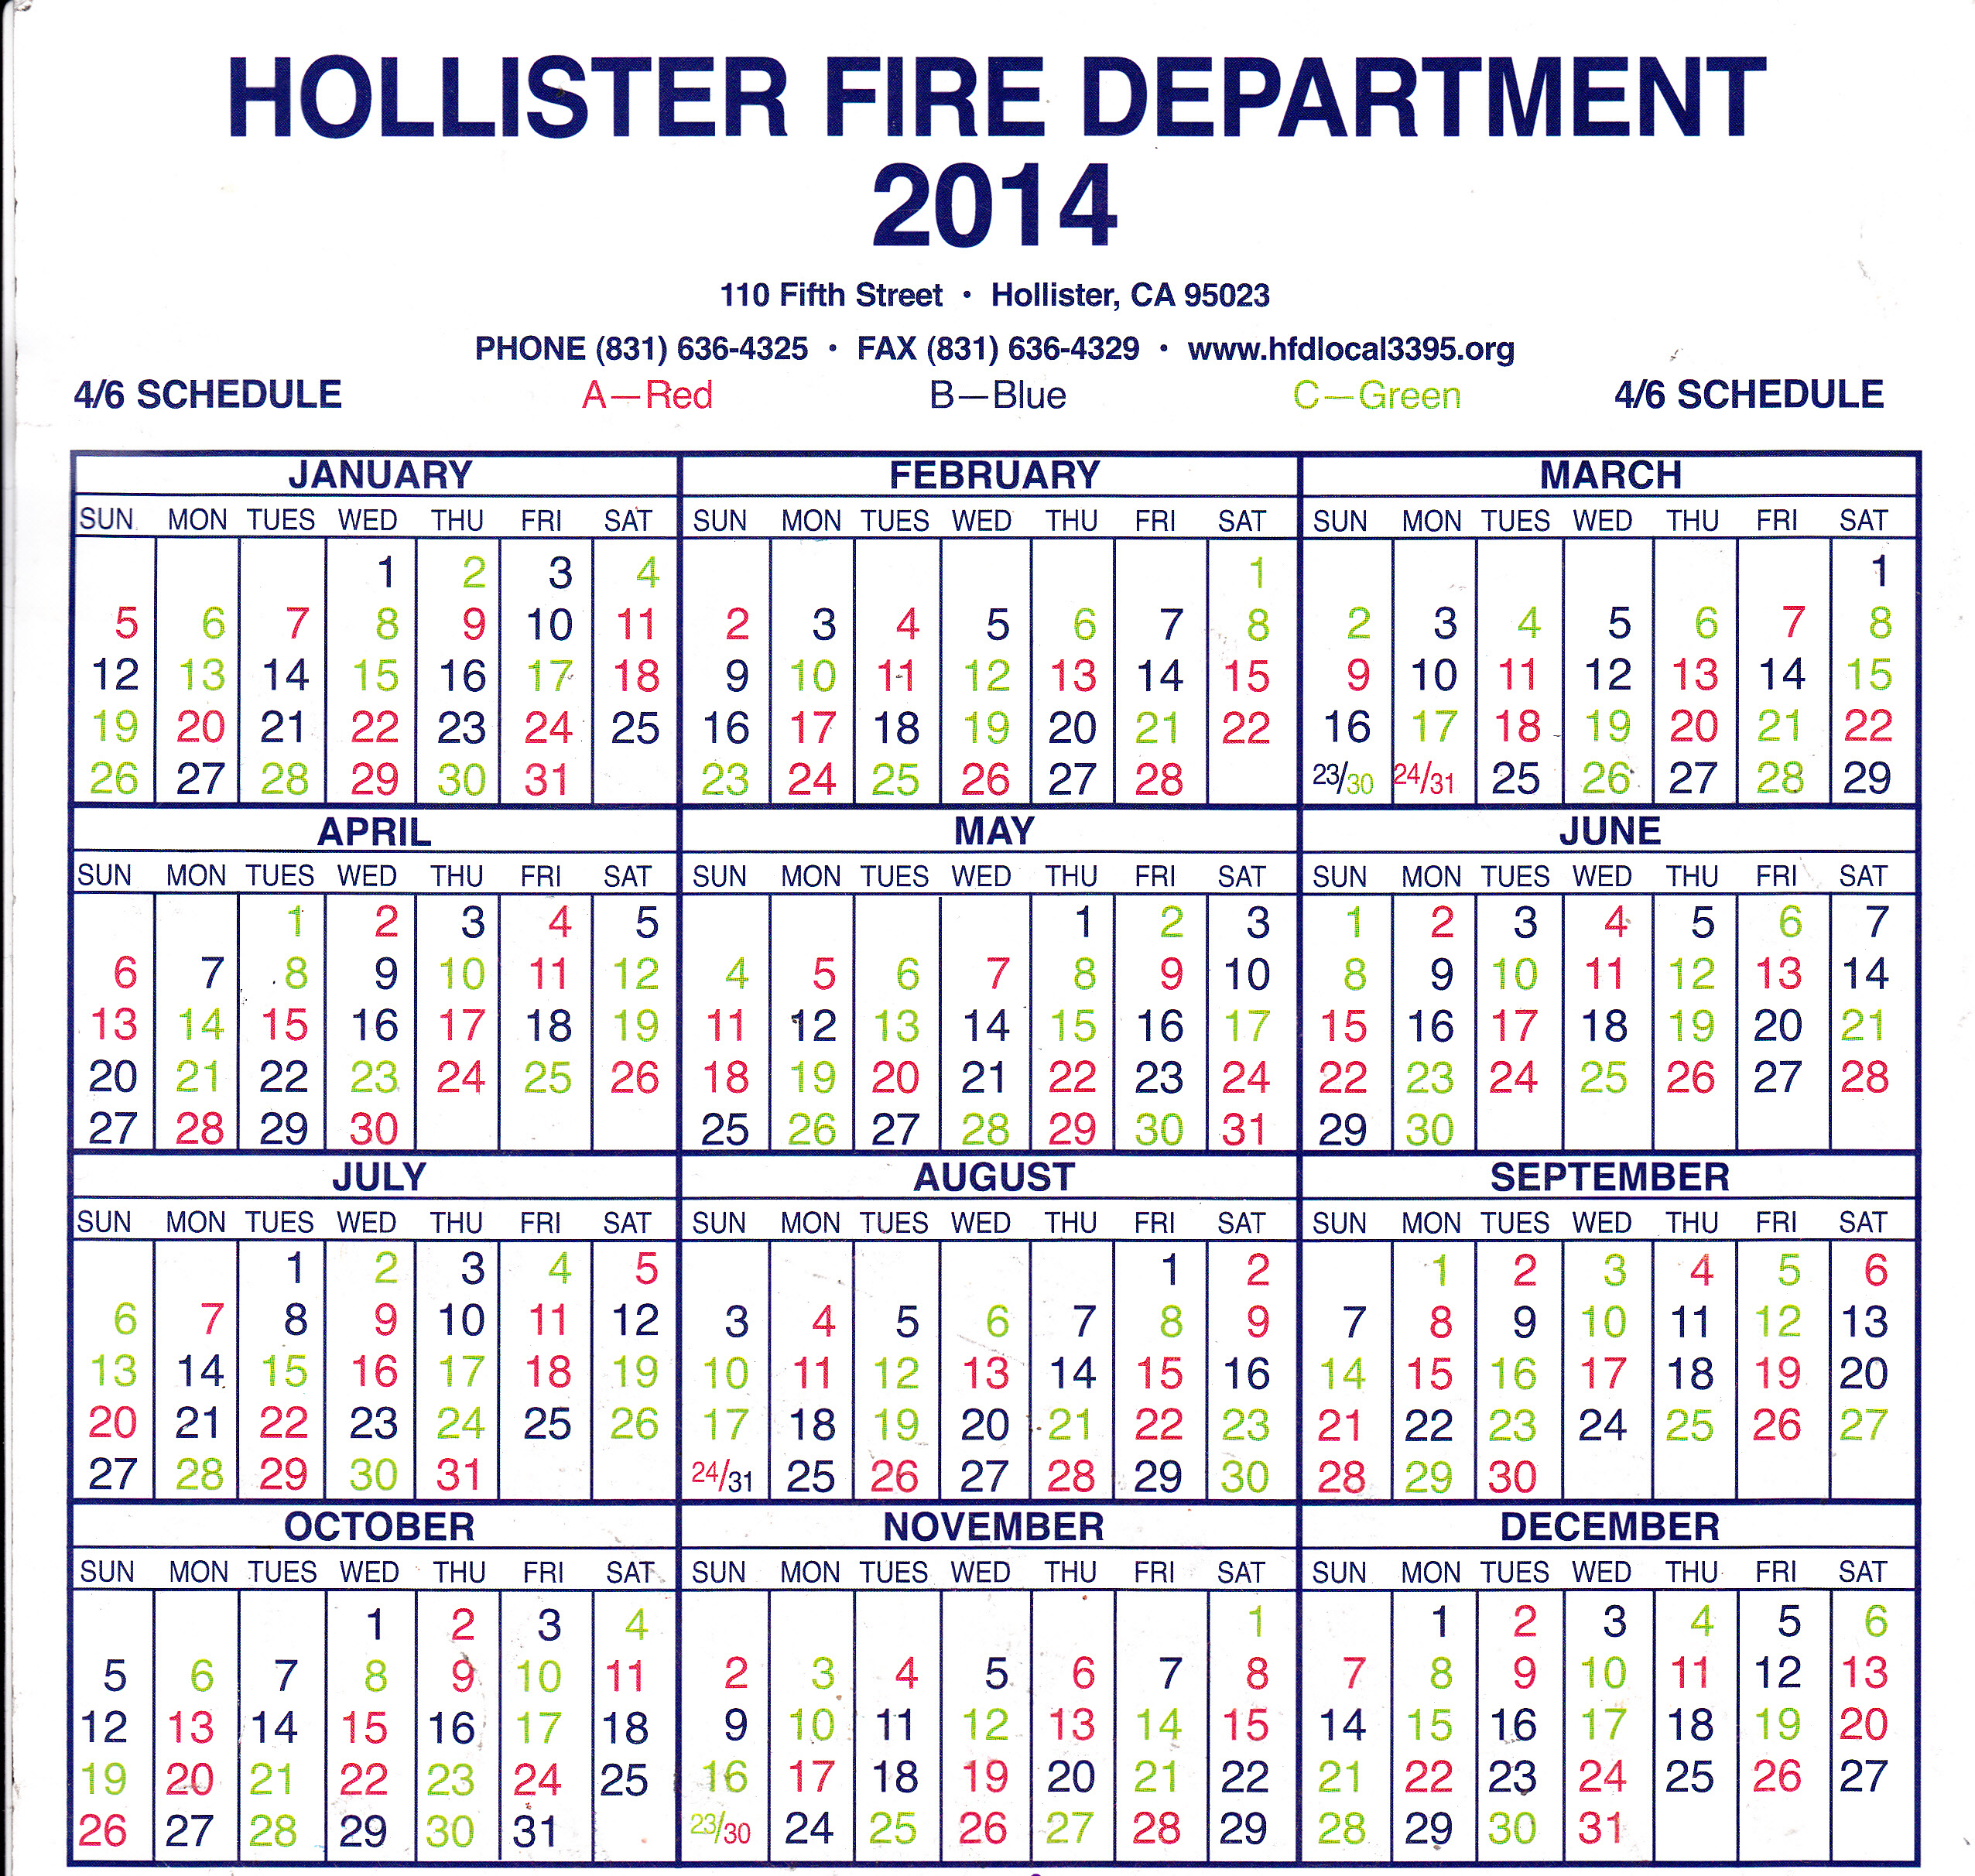 houston fire dept shift calendar Hollister Fire Department Local 3395 - Shift Calendar